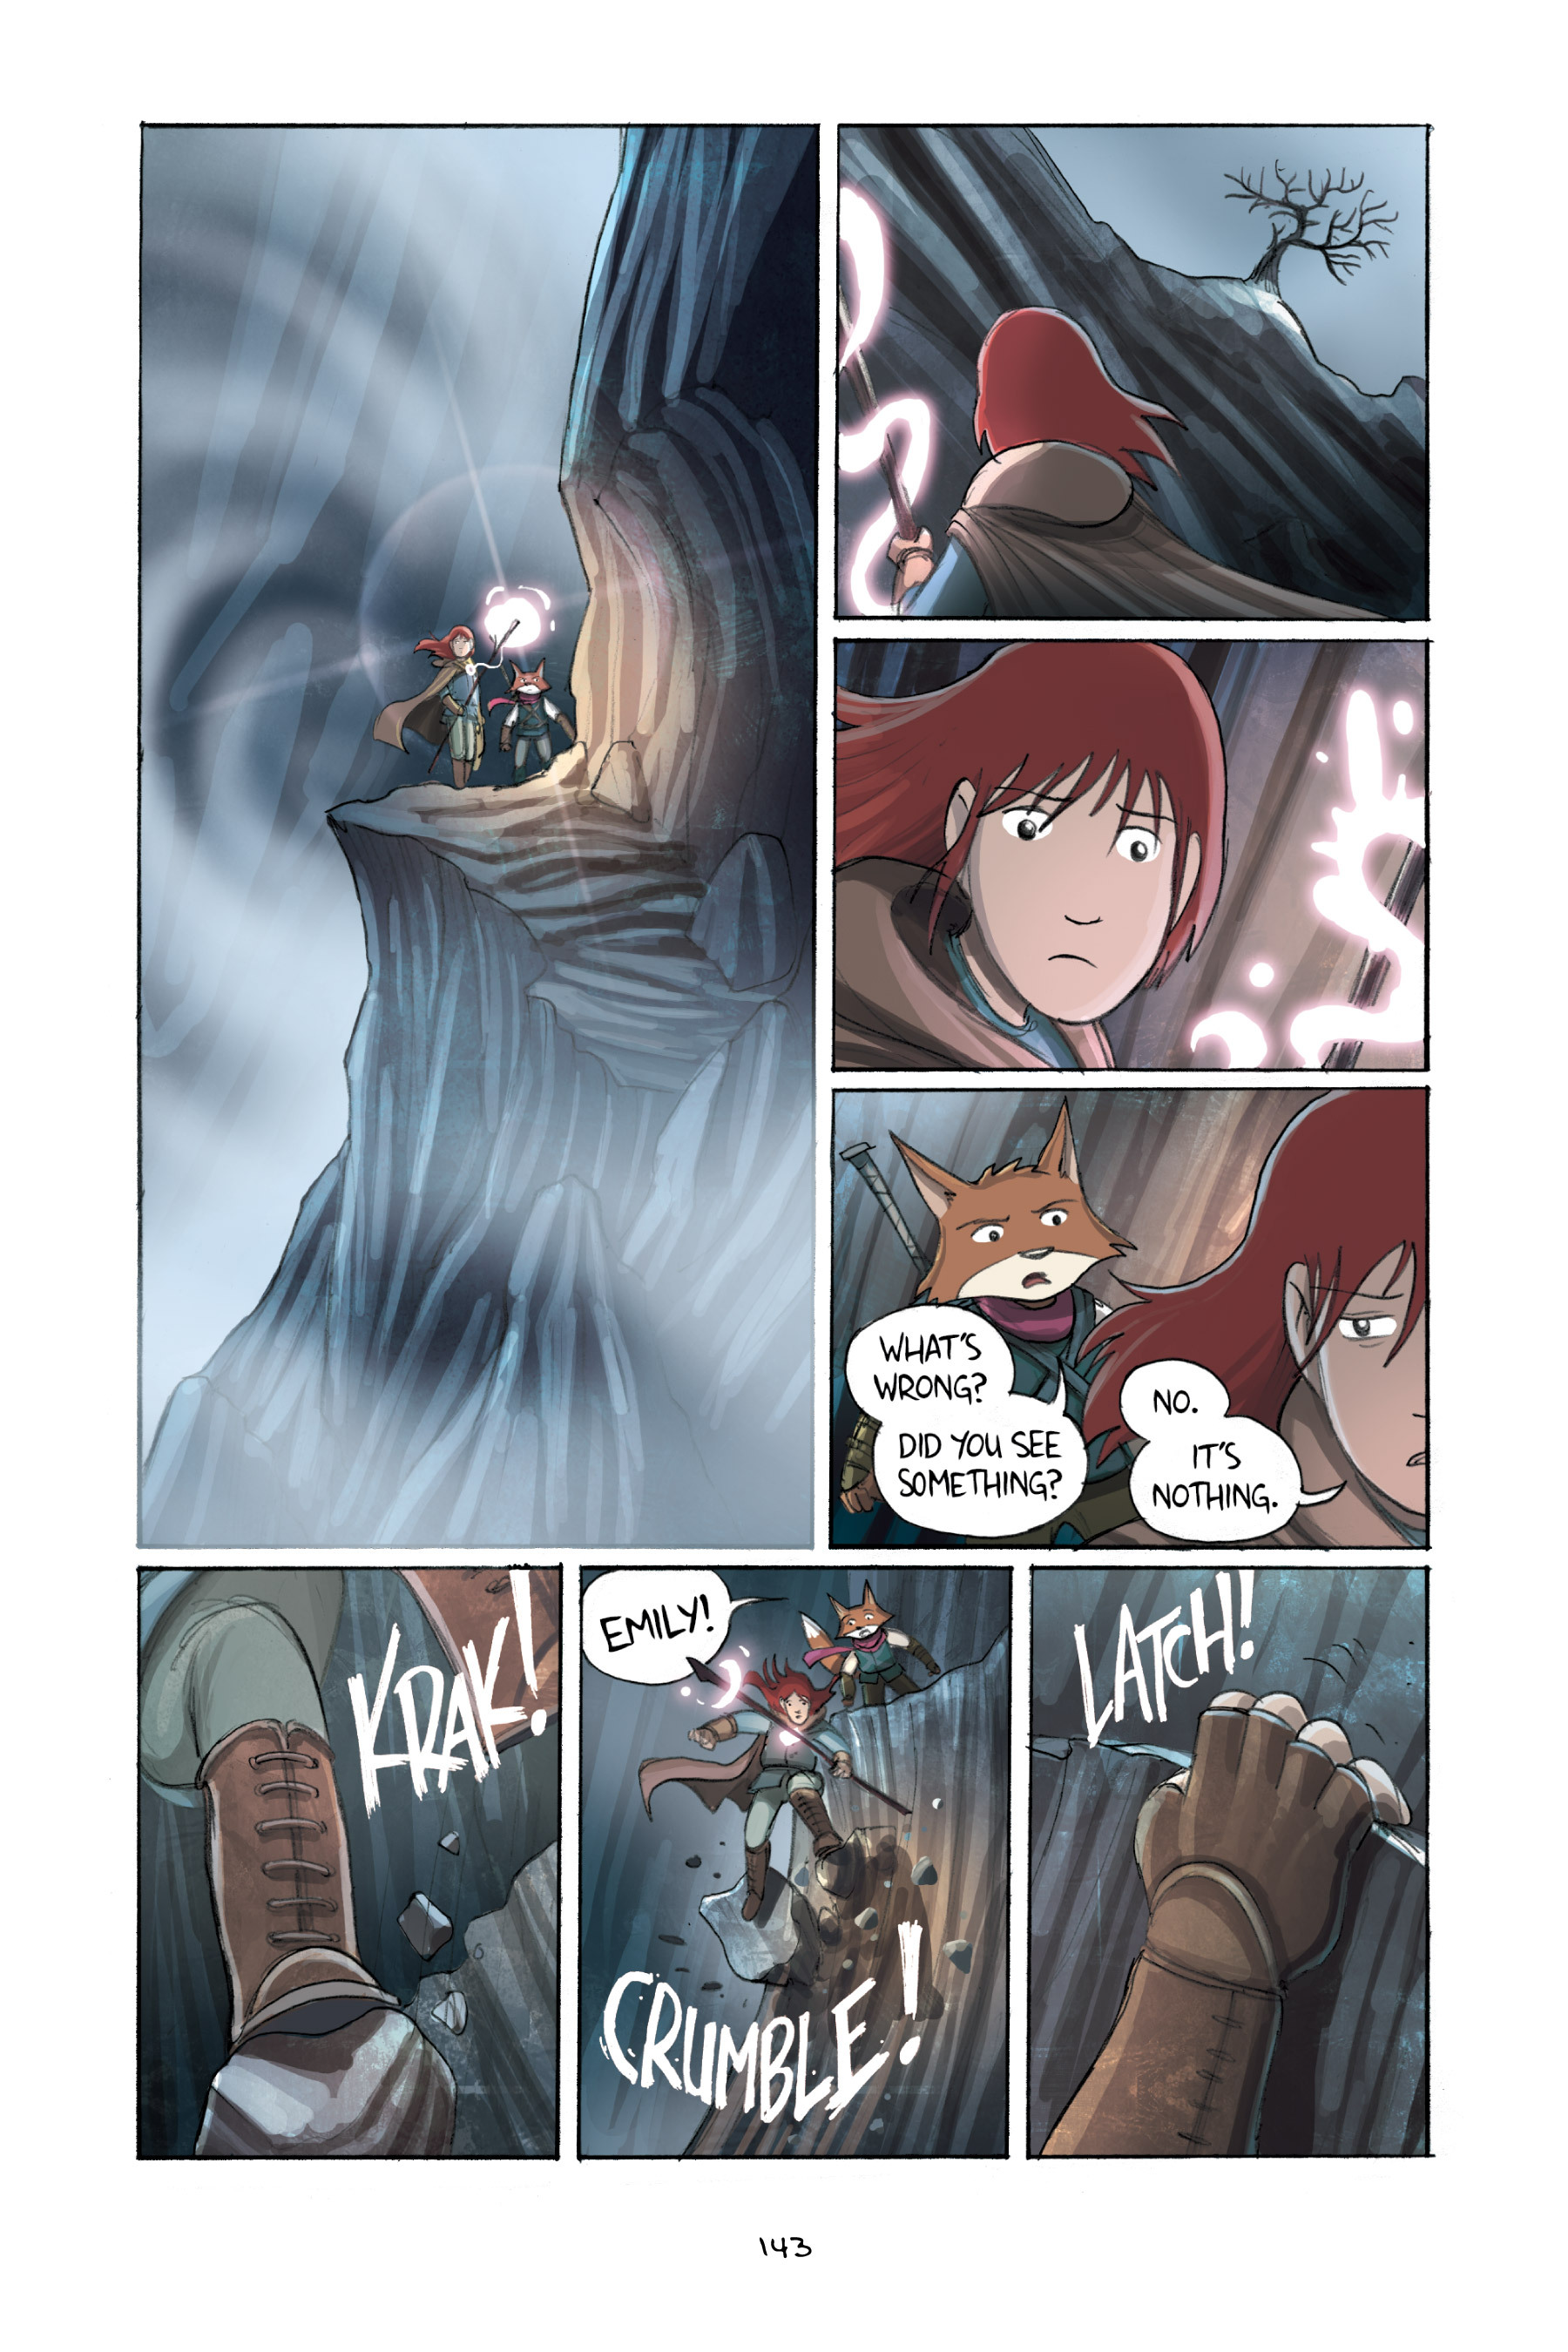 Read online Amulet comic -  Issue #2 - 142